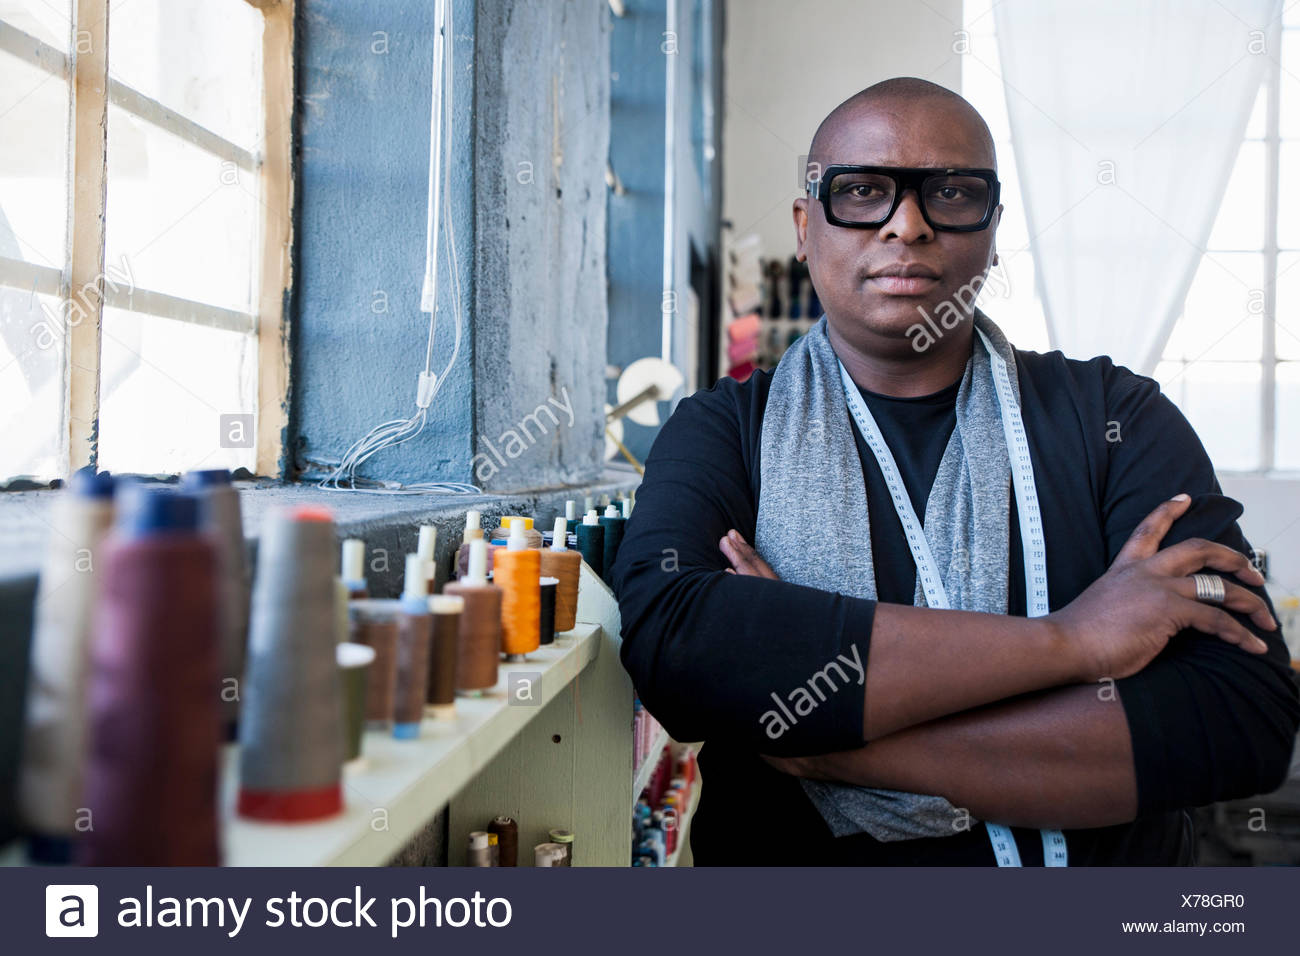 Portrait of man arms with crossed looking at camera - Stock Image